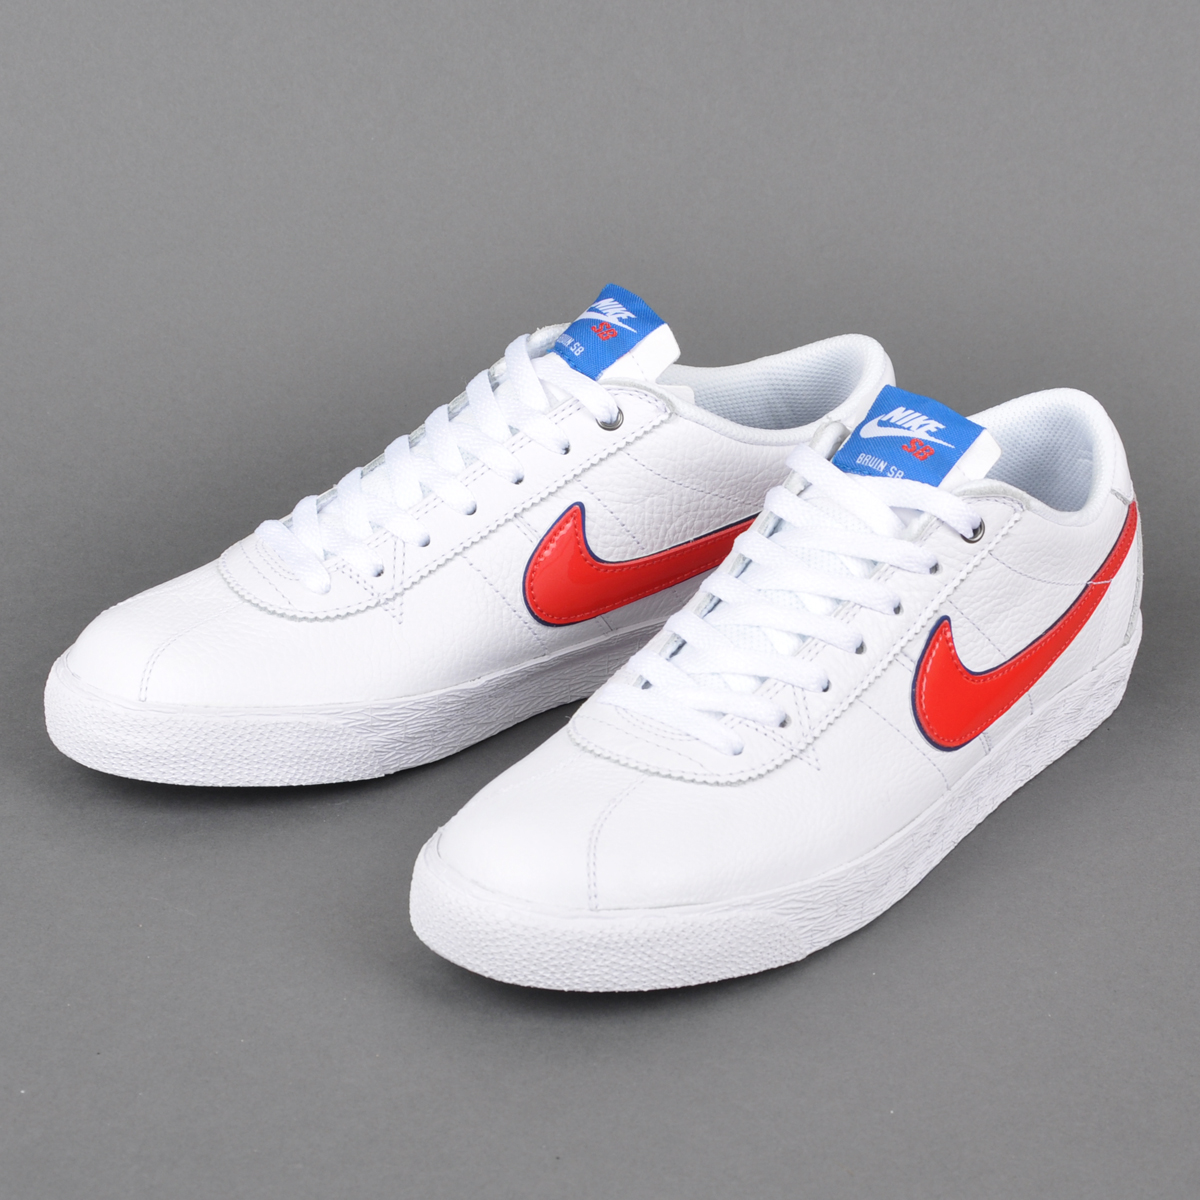 Nike Sb White And Red